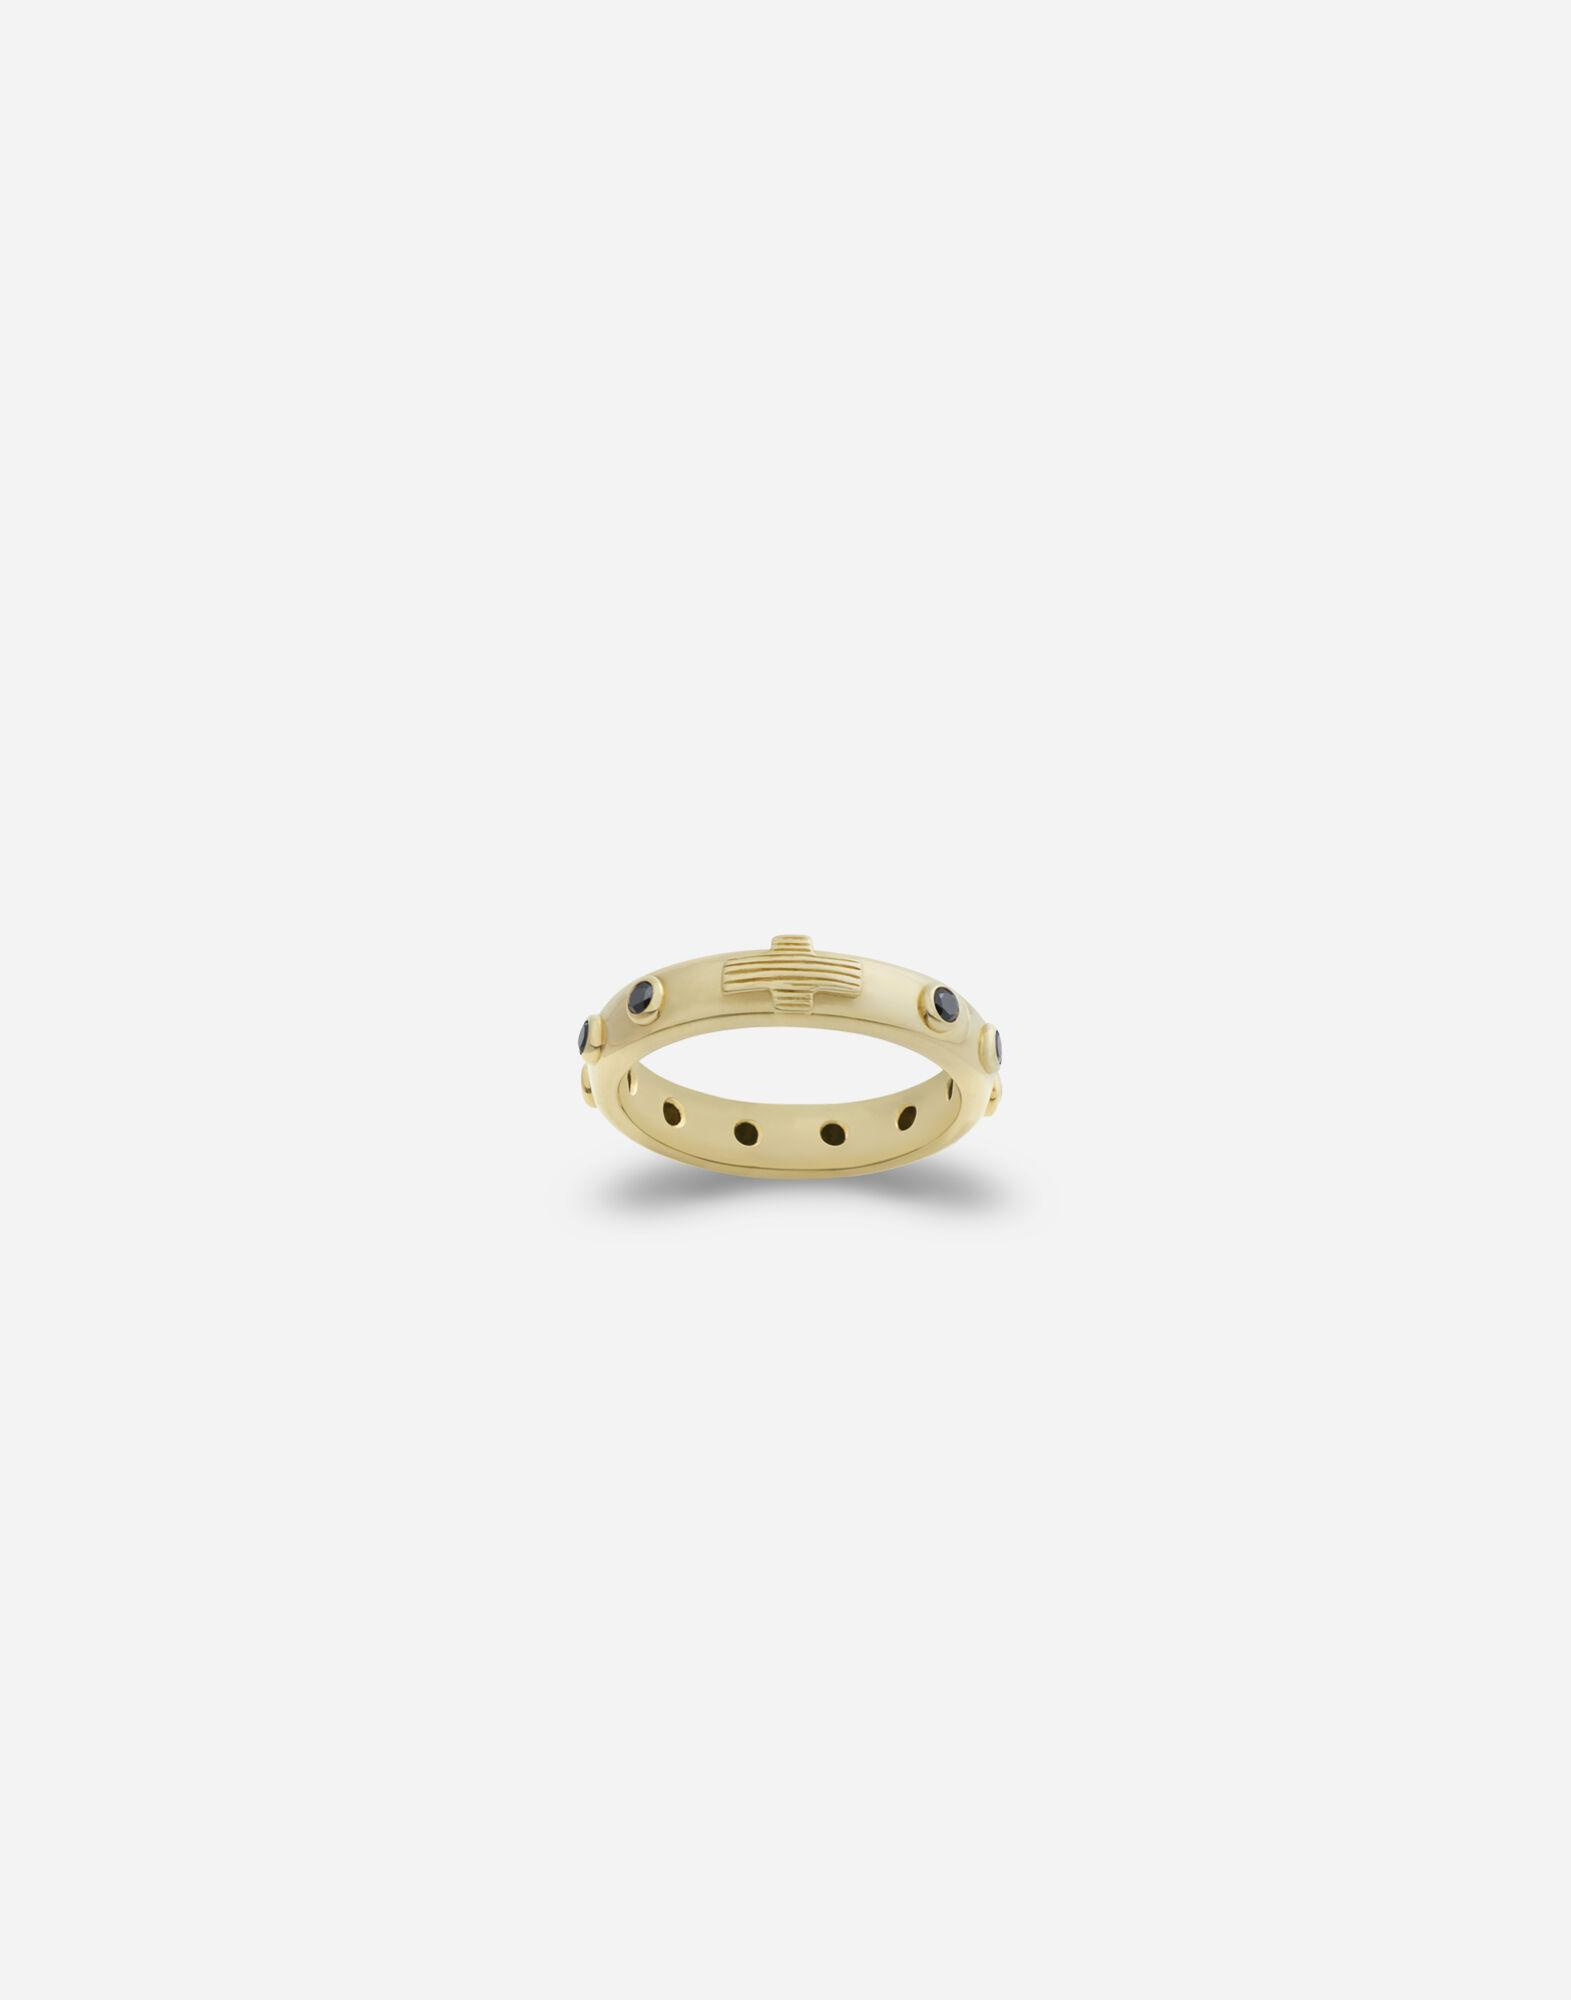 Devotion band in yellow gold with black diamonds